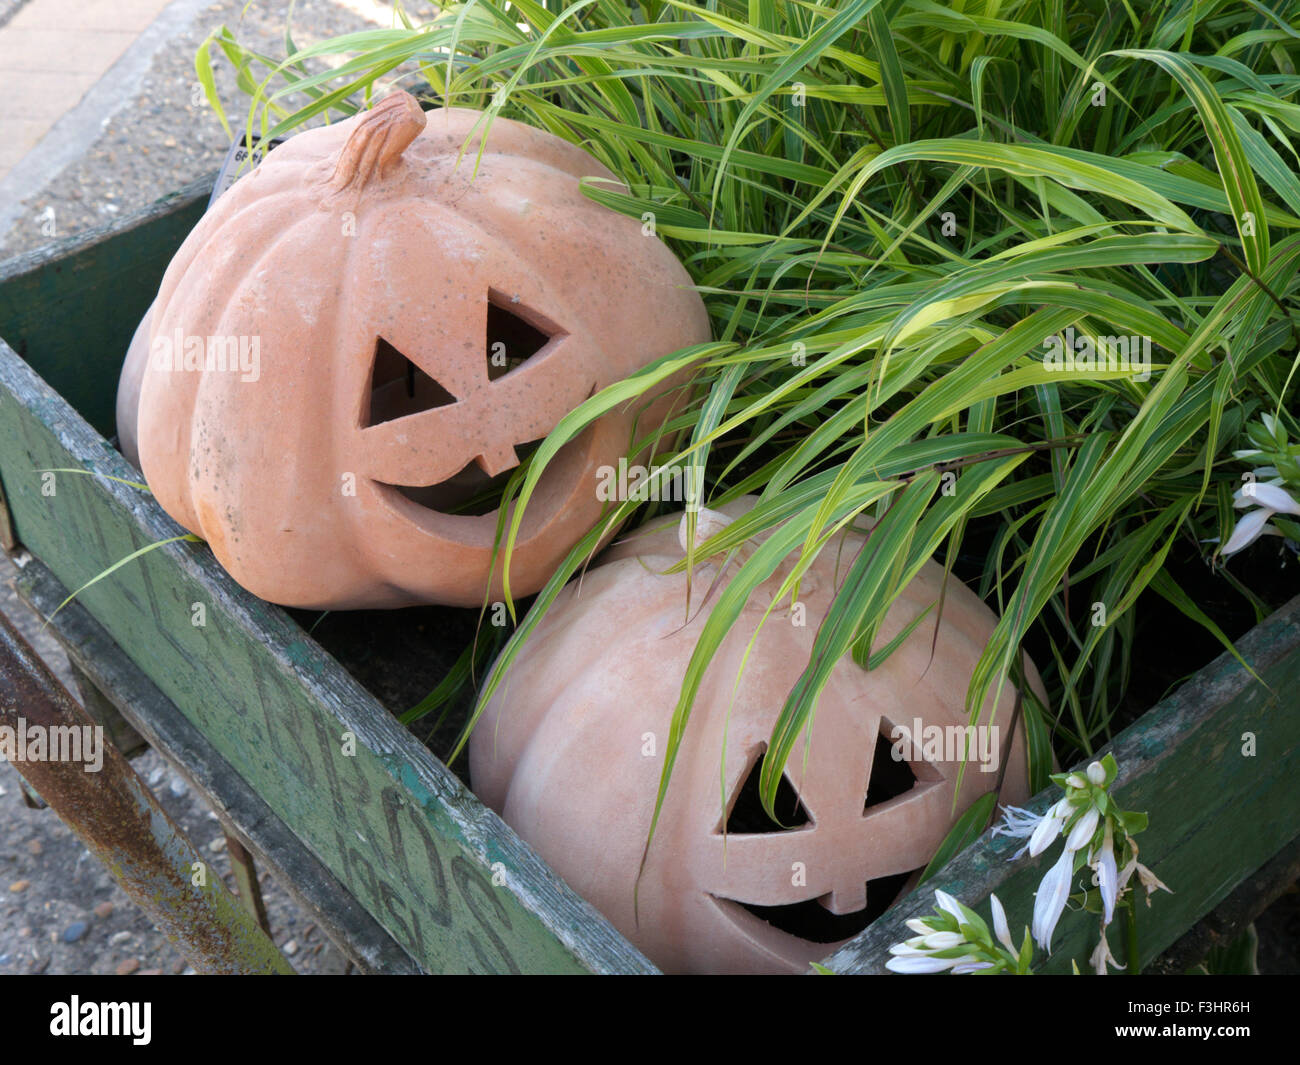 Halloween model pumpkins 'jack-o'-lantern' carved pumpkin, associated with the holiday of Halloween - Stock Image